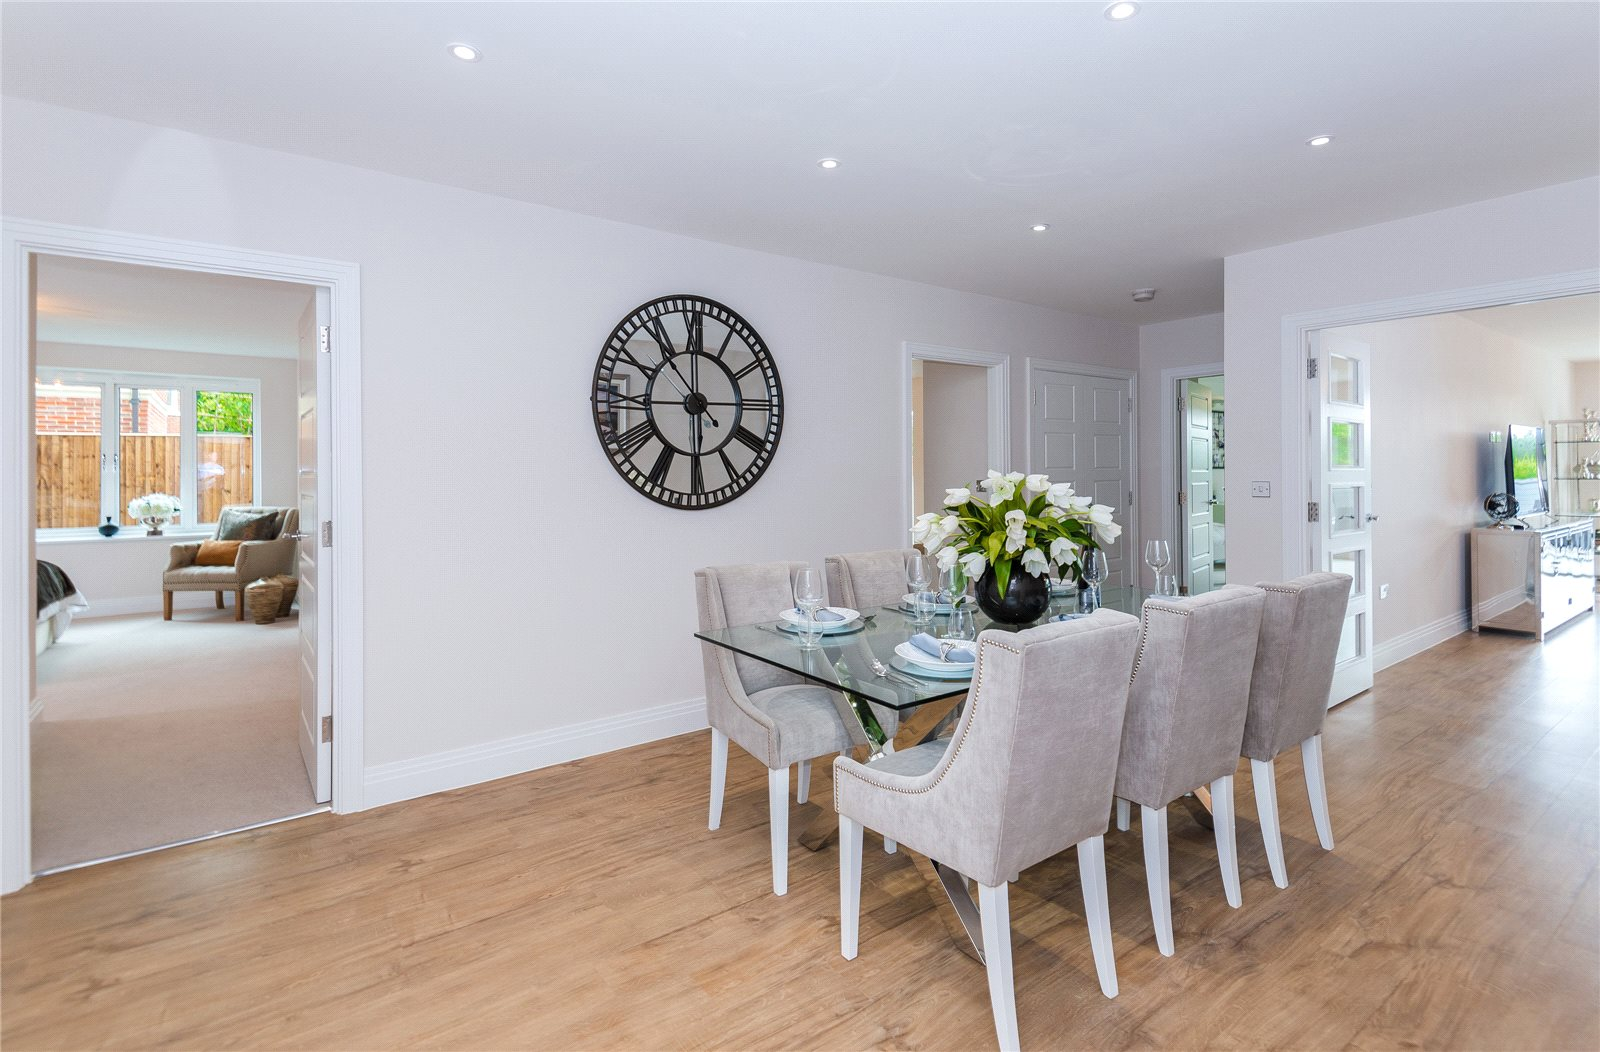 Additional photo for property listing at South Park Crescent, Gerrards Cross, Buckinghamshire, SL9 Gerrards Cross, イギリス